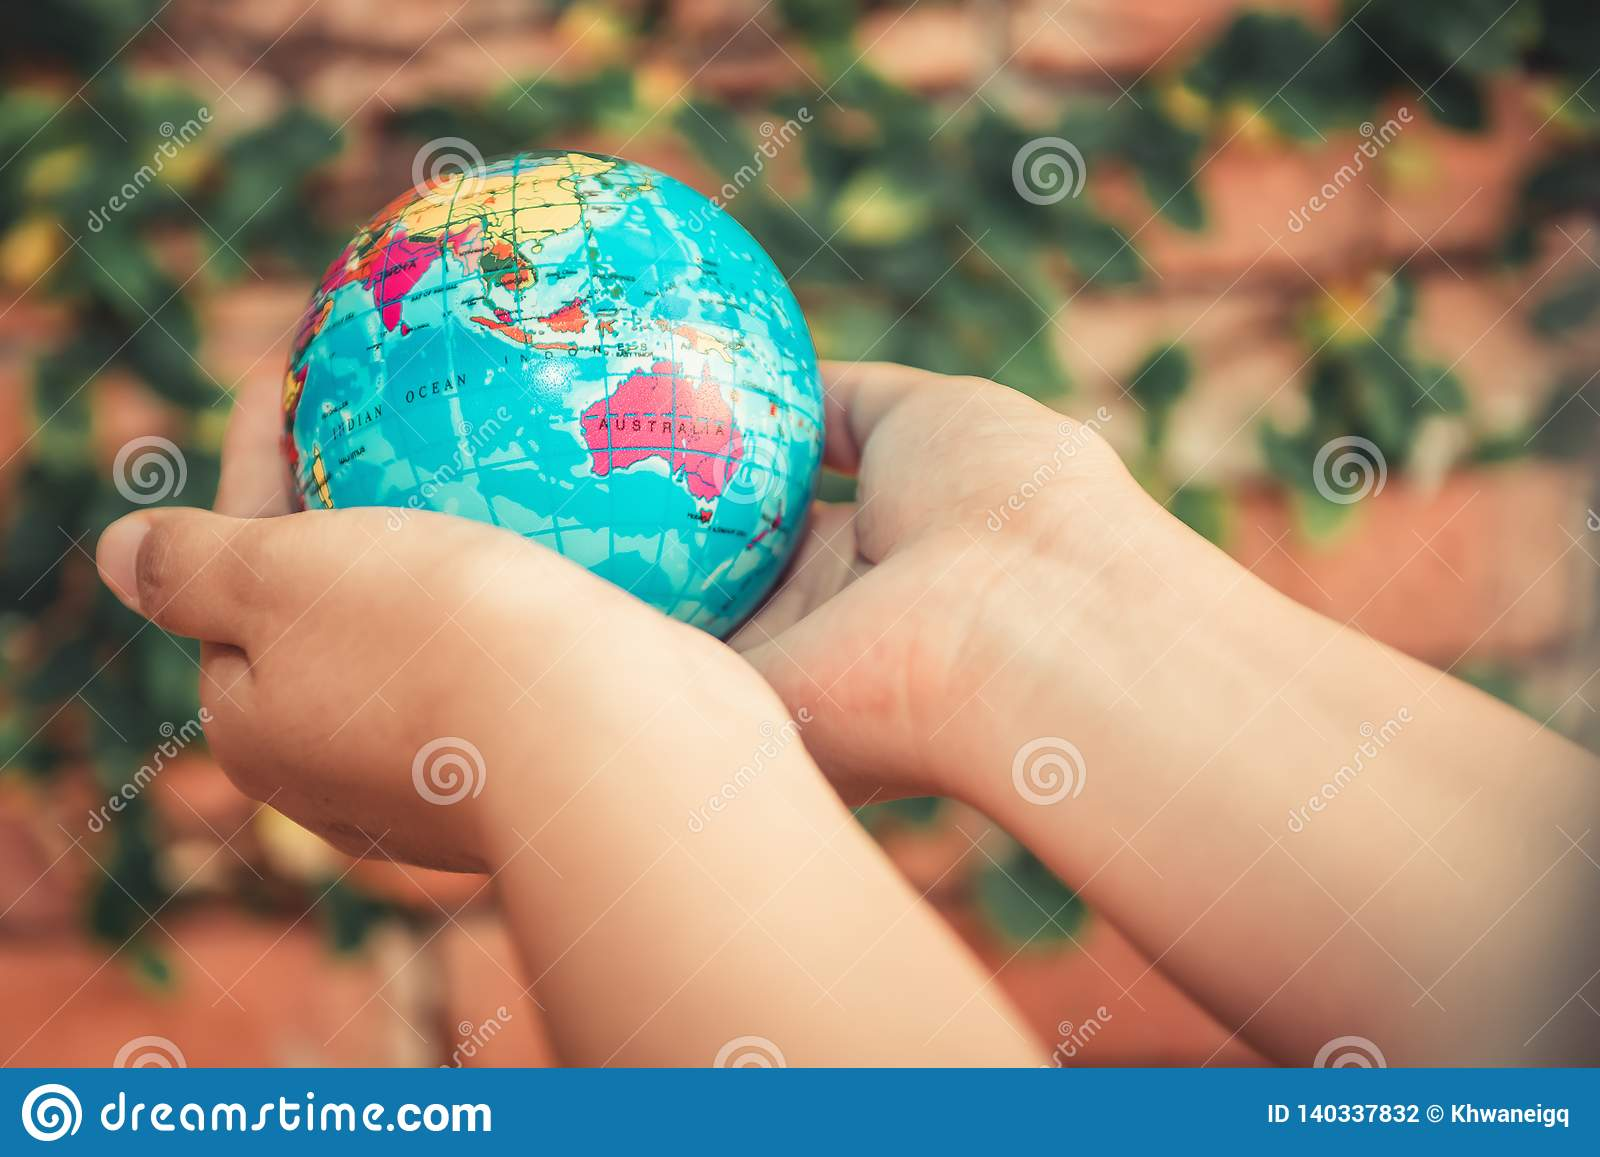 Save The Earth Concept, Woman Hands is Holding Mockup The Global on Tree Leaves Background. Creative Idea for Conservation